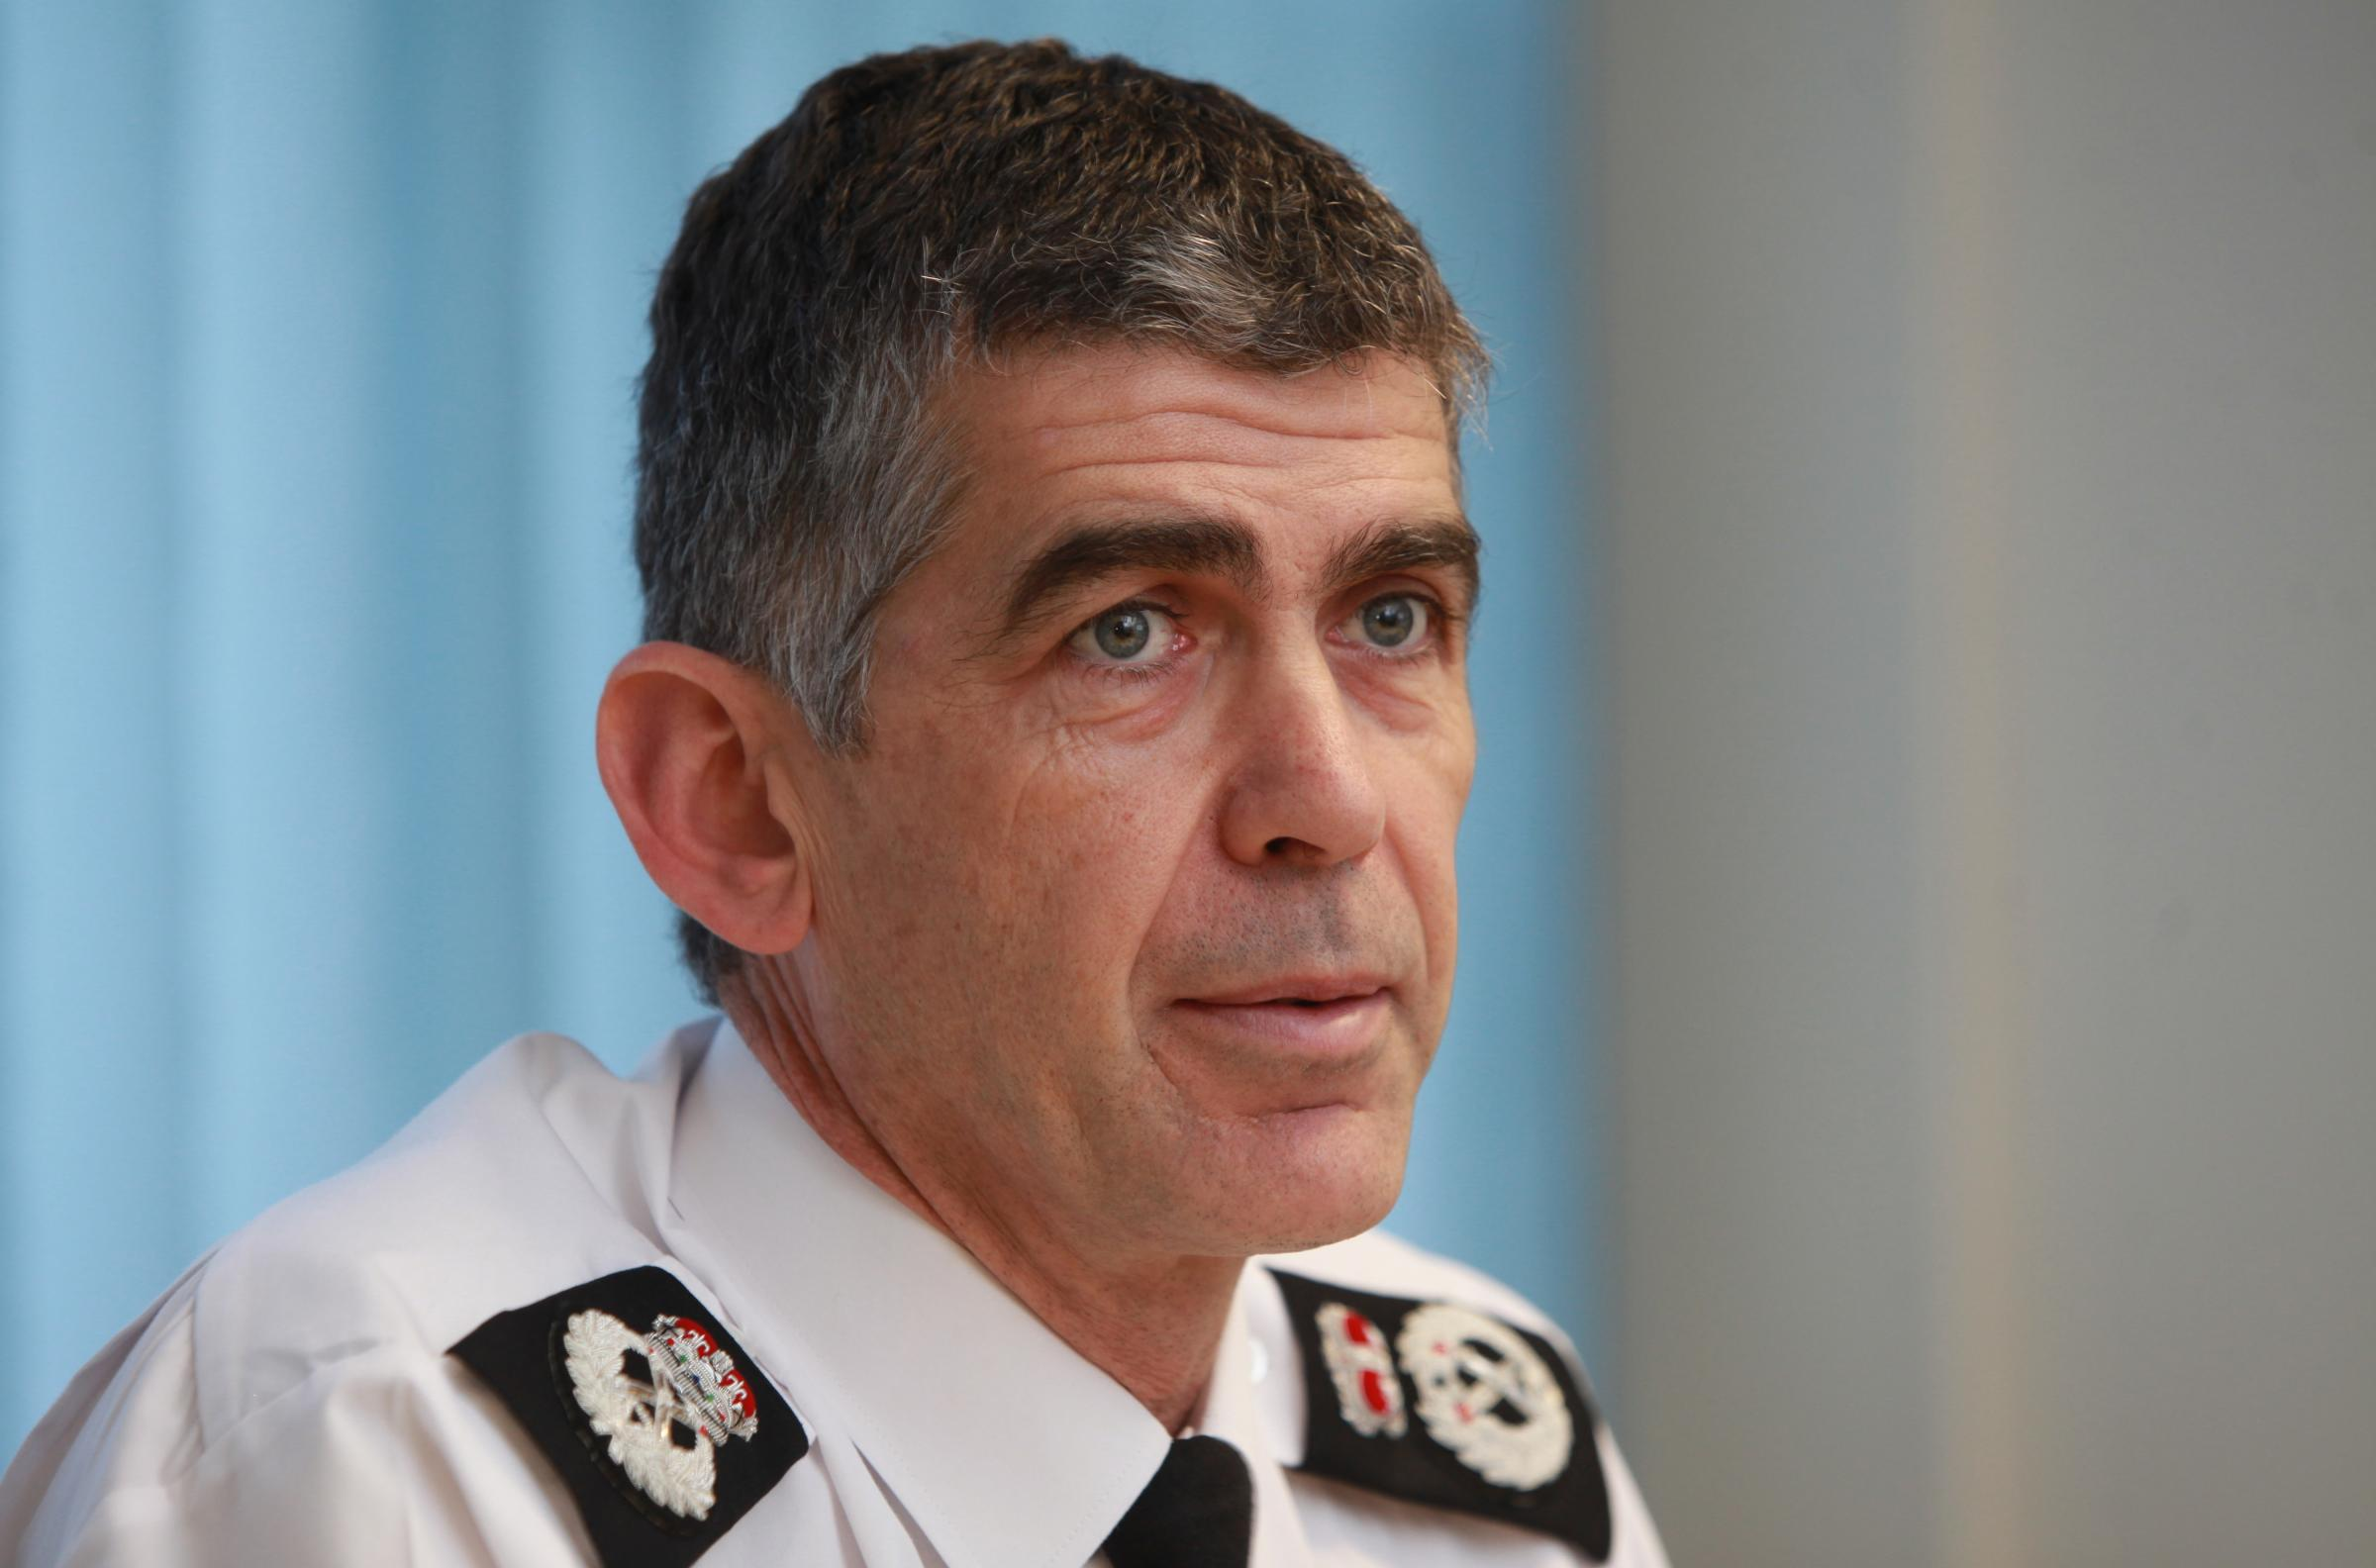 Hampshire Police Chief Constable Andy Marsh